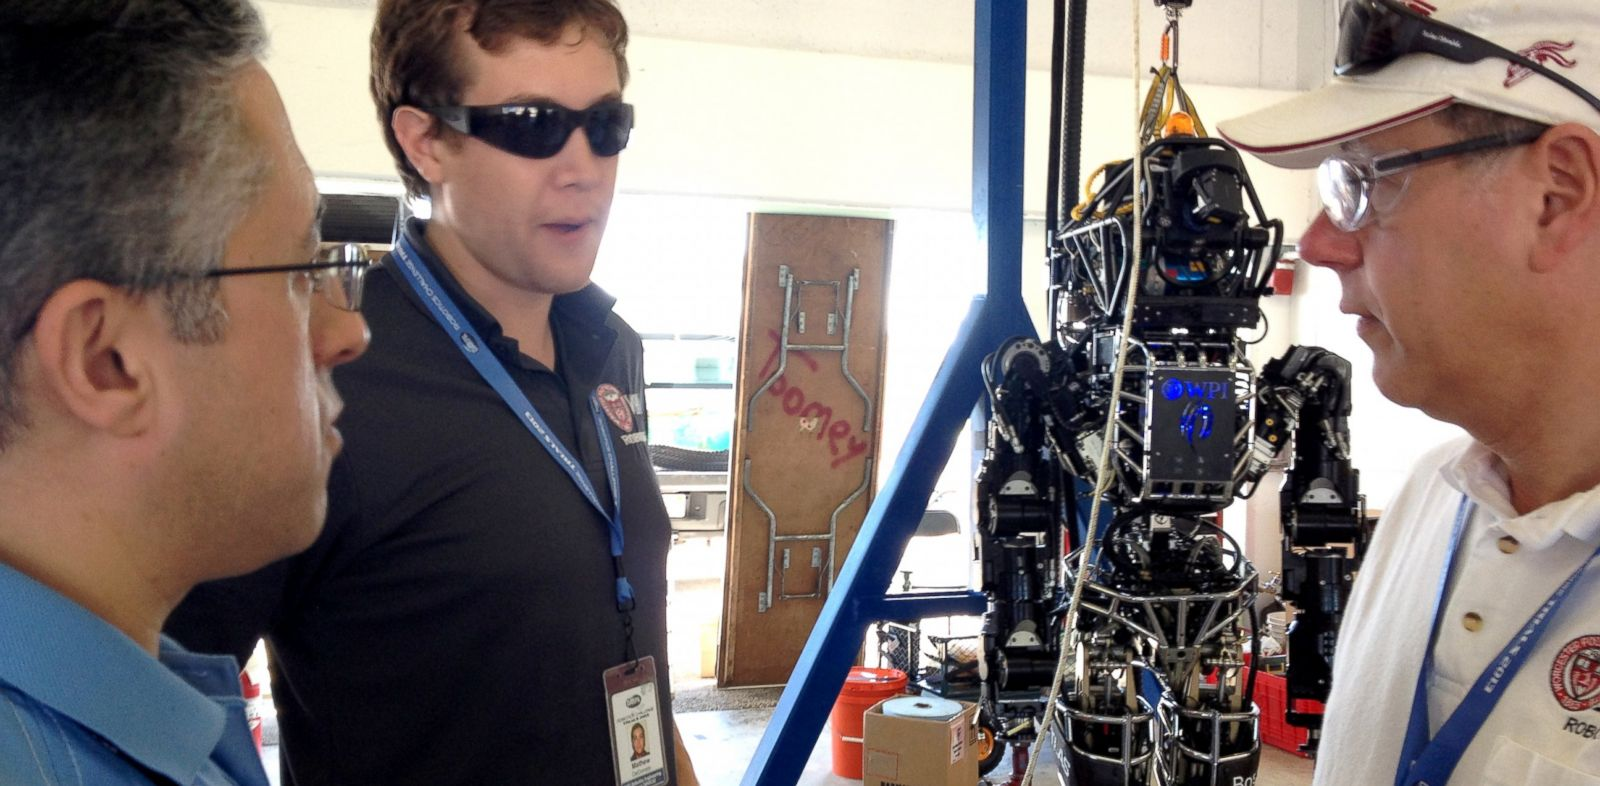 PHOTO: WPIs robot Warner stands ready for action at the DARPA Robotics Challenge.